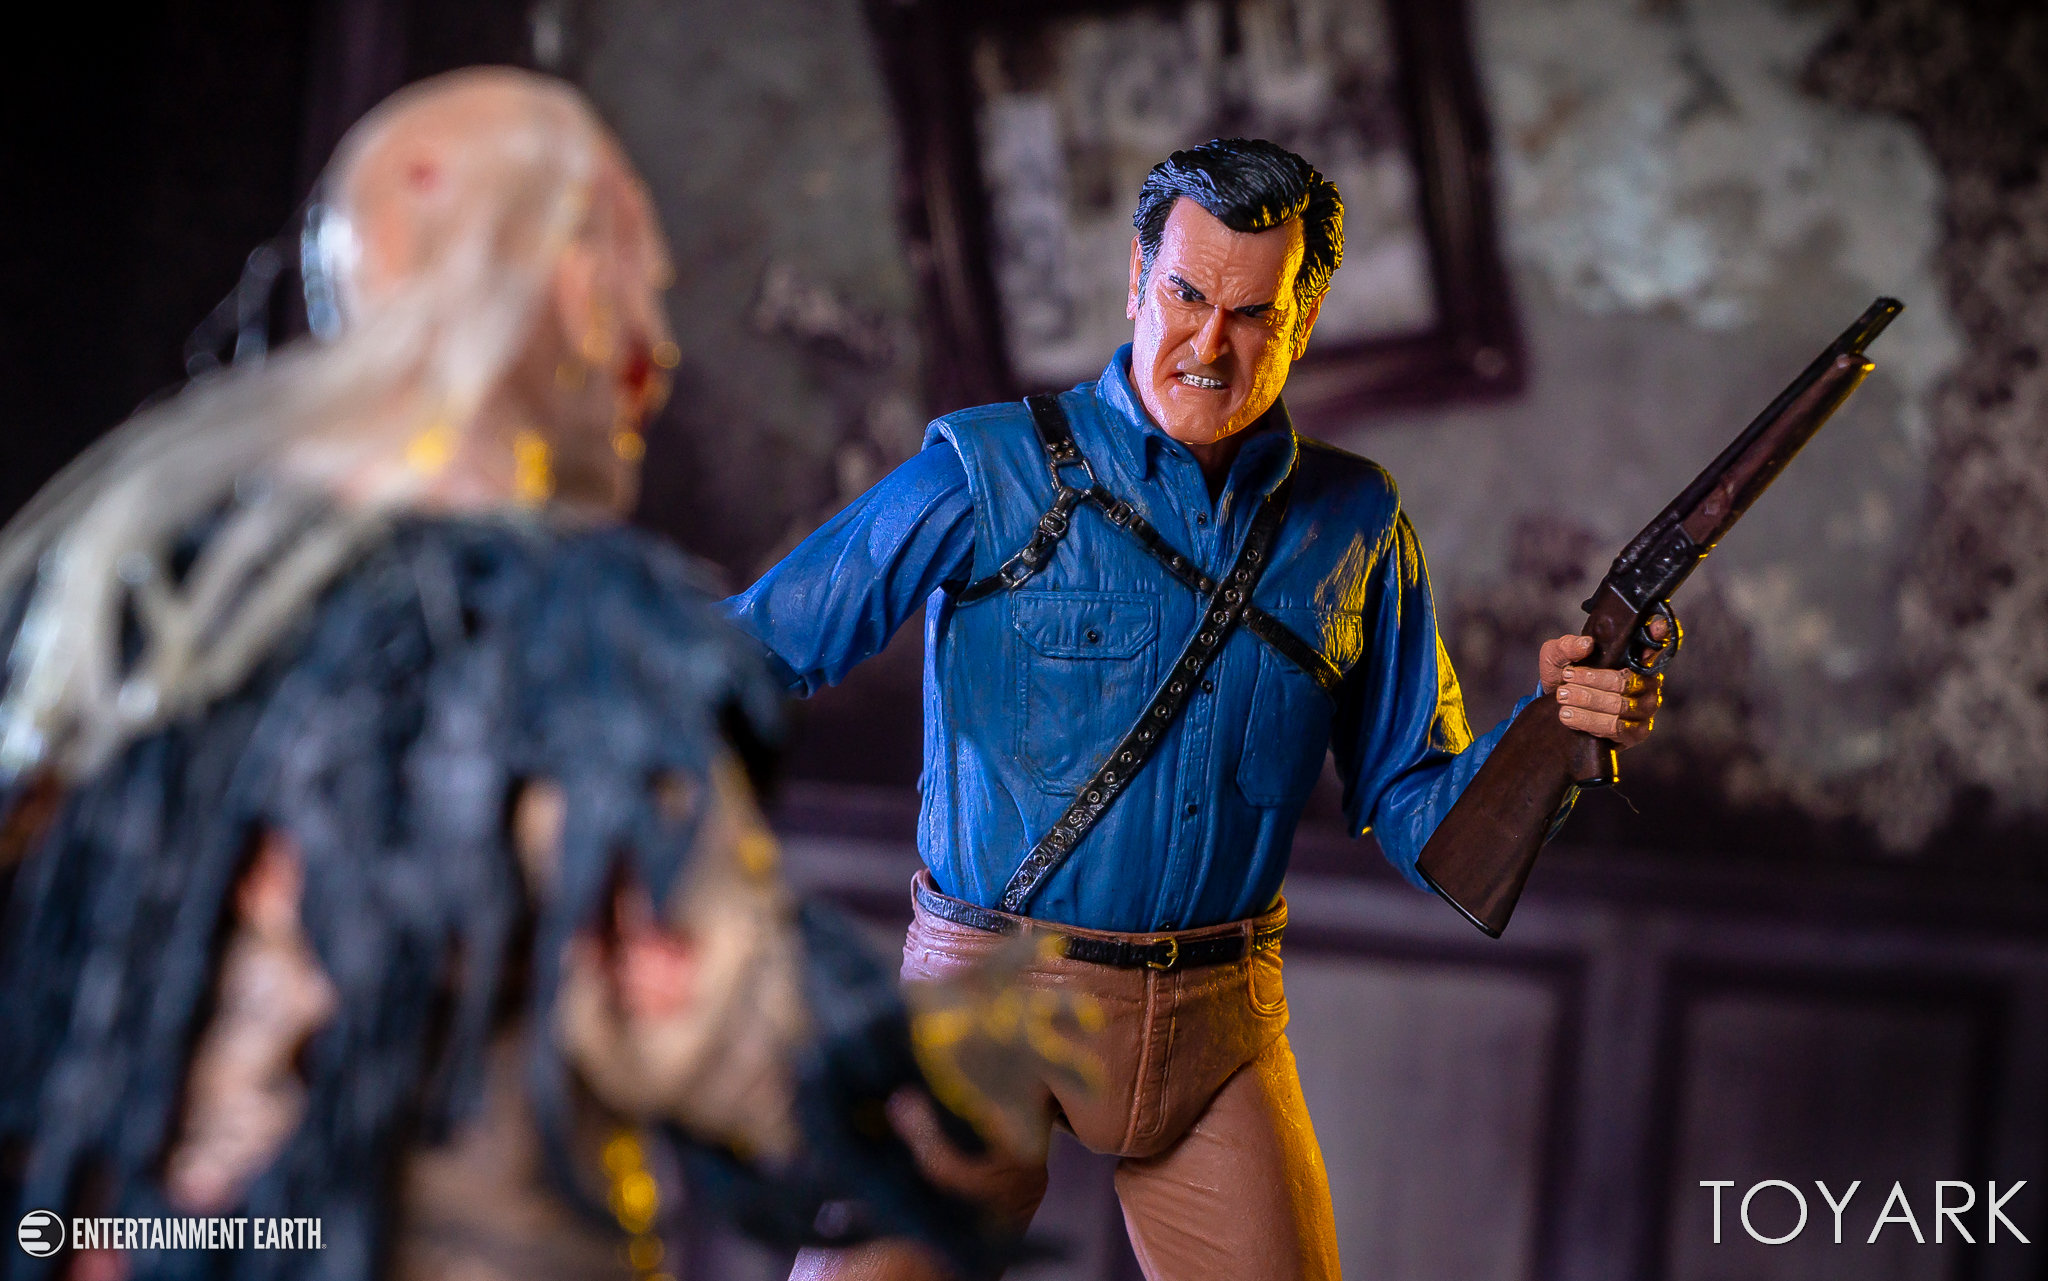 http://news.toyark.com/wp-content/uploads/sites/4/2018/04/Ash-vs-Evil-Dead-Series-2-NECA-076.jpg